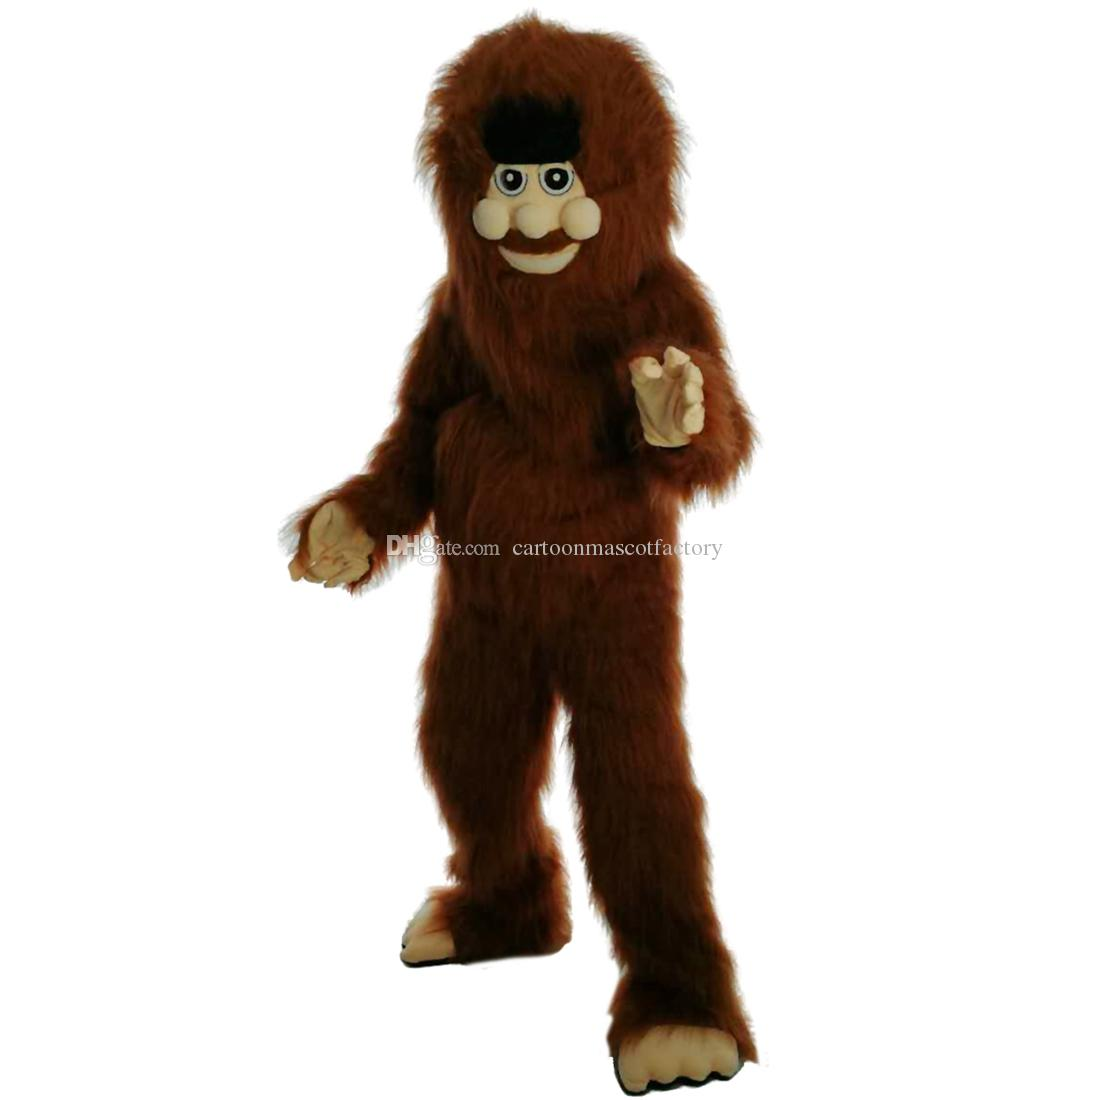 Long-haired wild man savage Mascot Costumes Cartoon Character Adult Sz 100% Real Picture 068